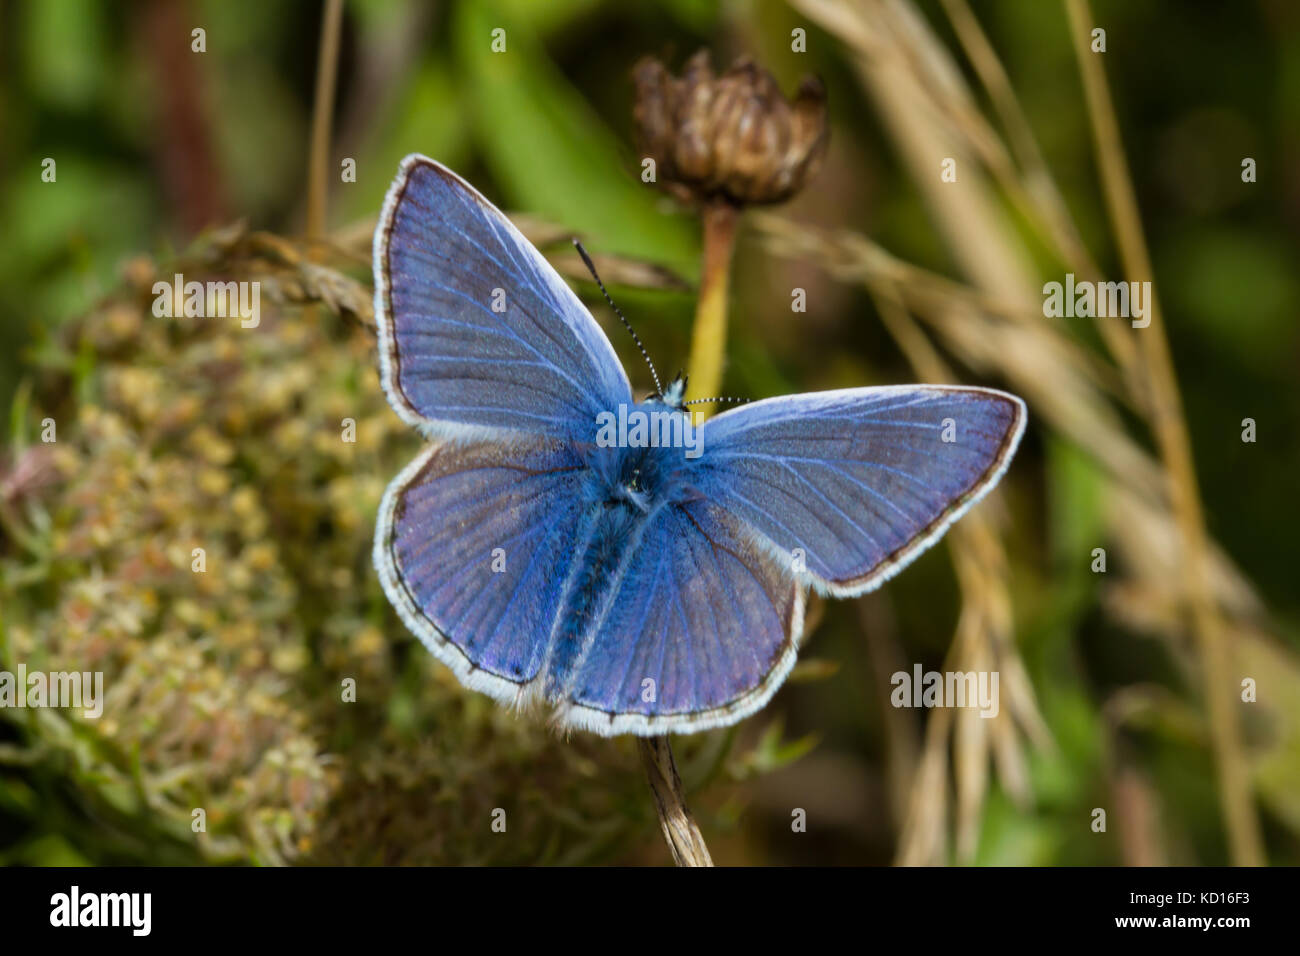 Common Blue butterfly resting - Stock Image